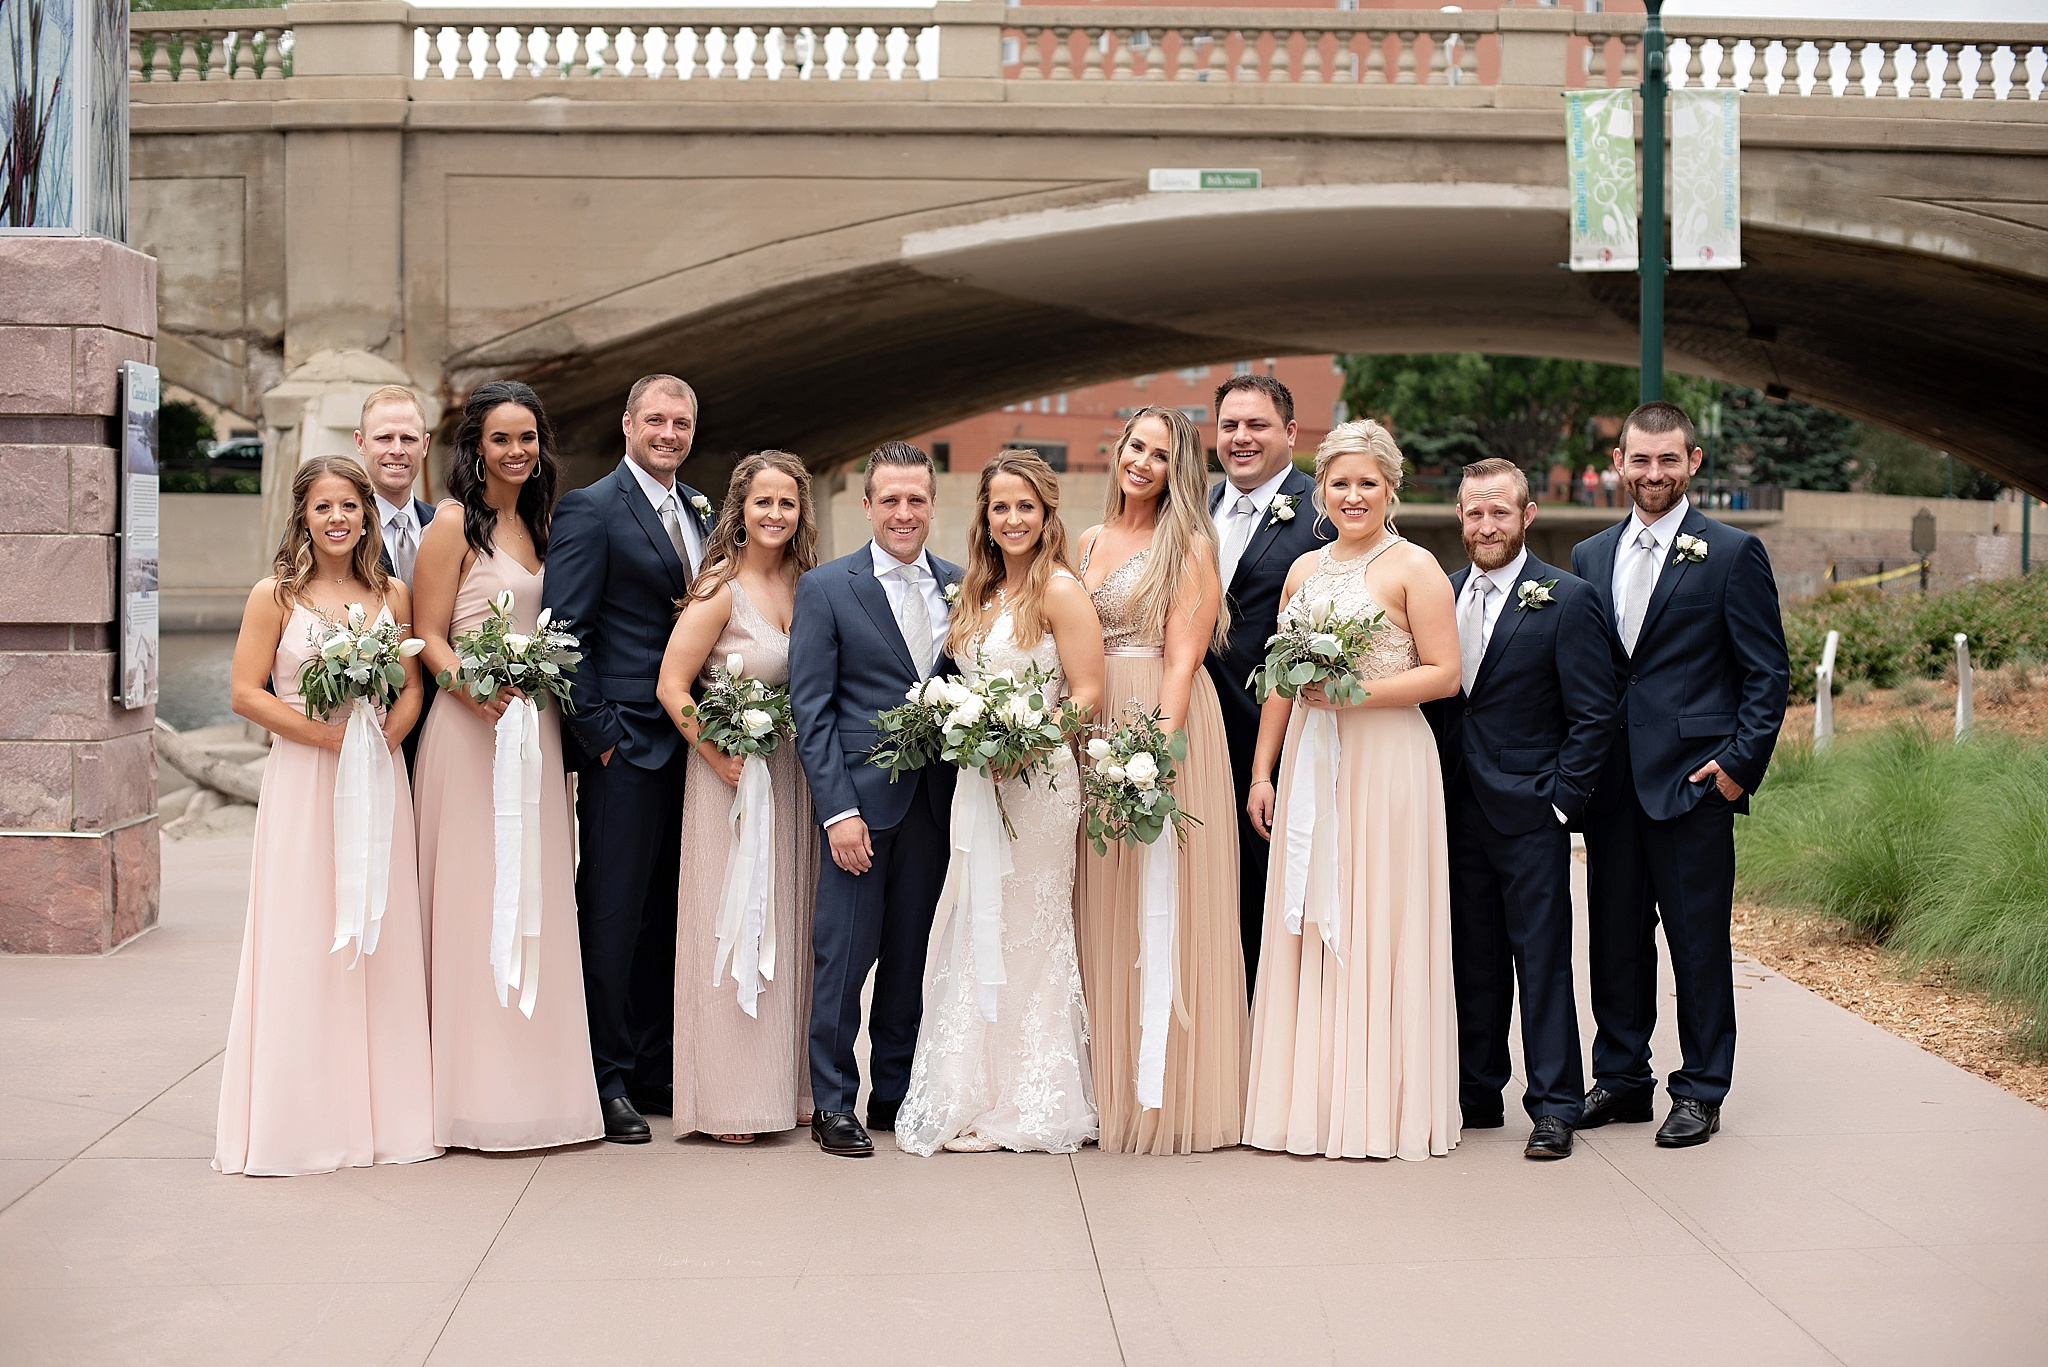 blush navy and white wedding party